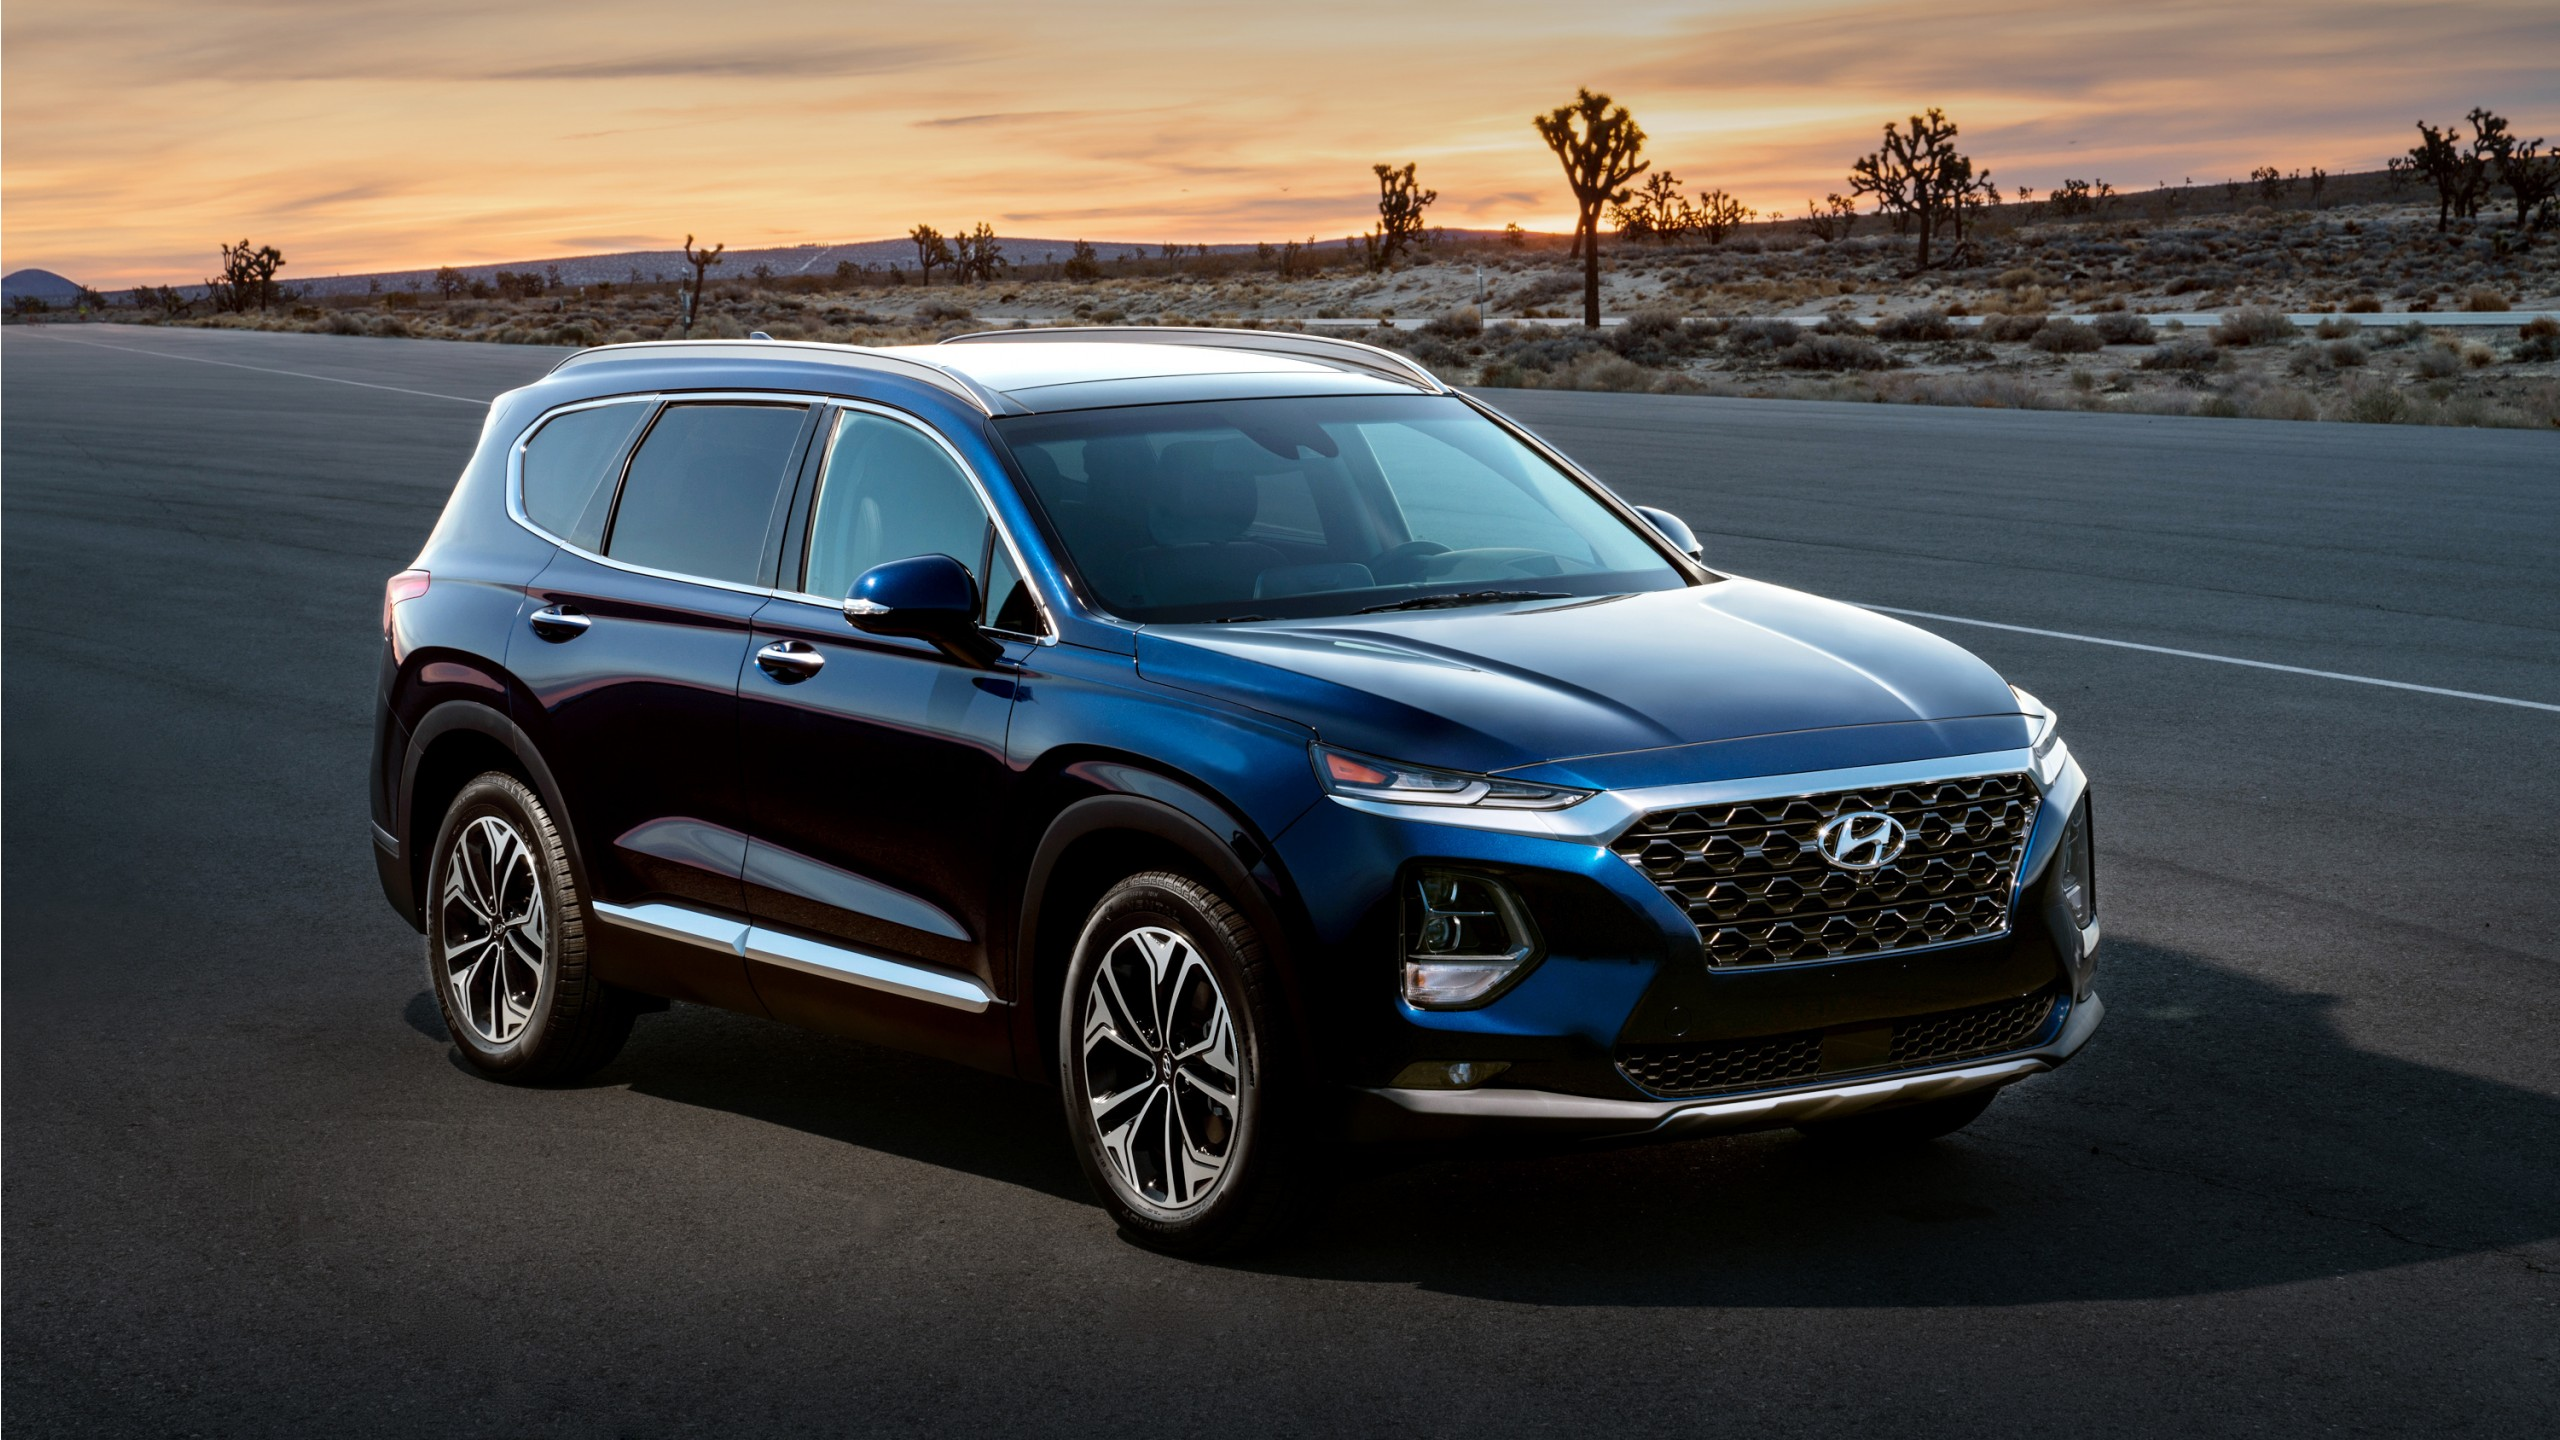 2019 Hyundai Santa Fe Wallpaper Hd Car Wallpapers Id 10107